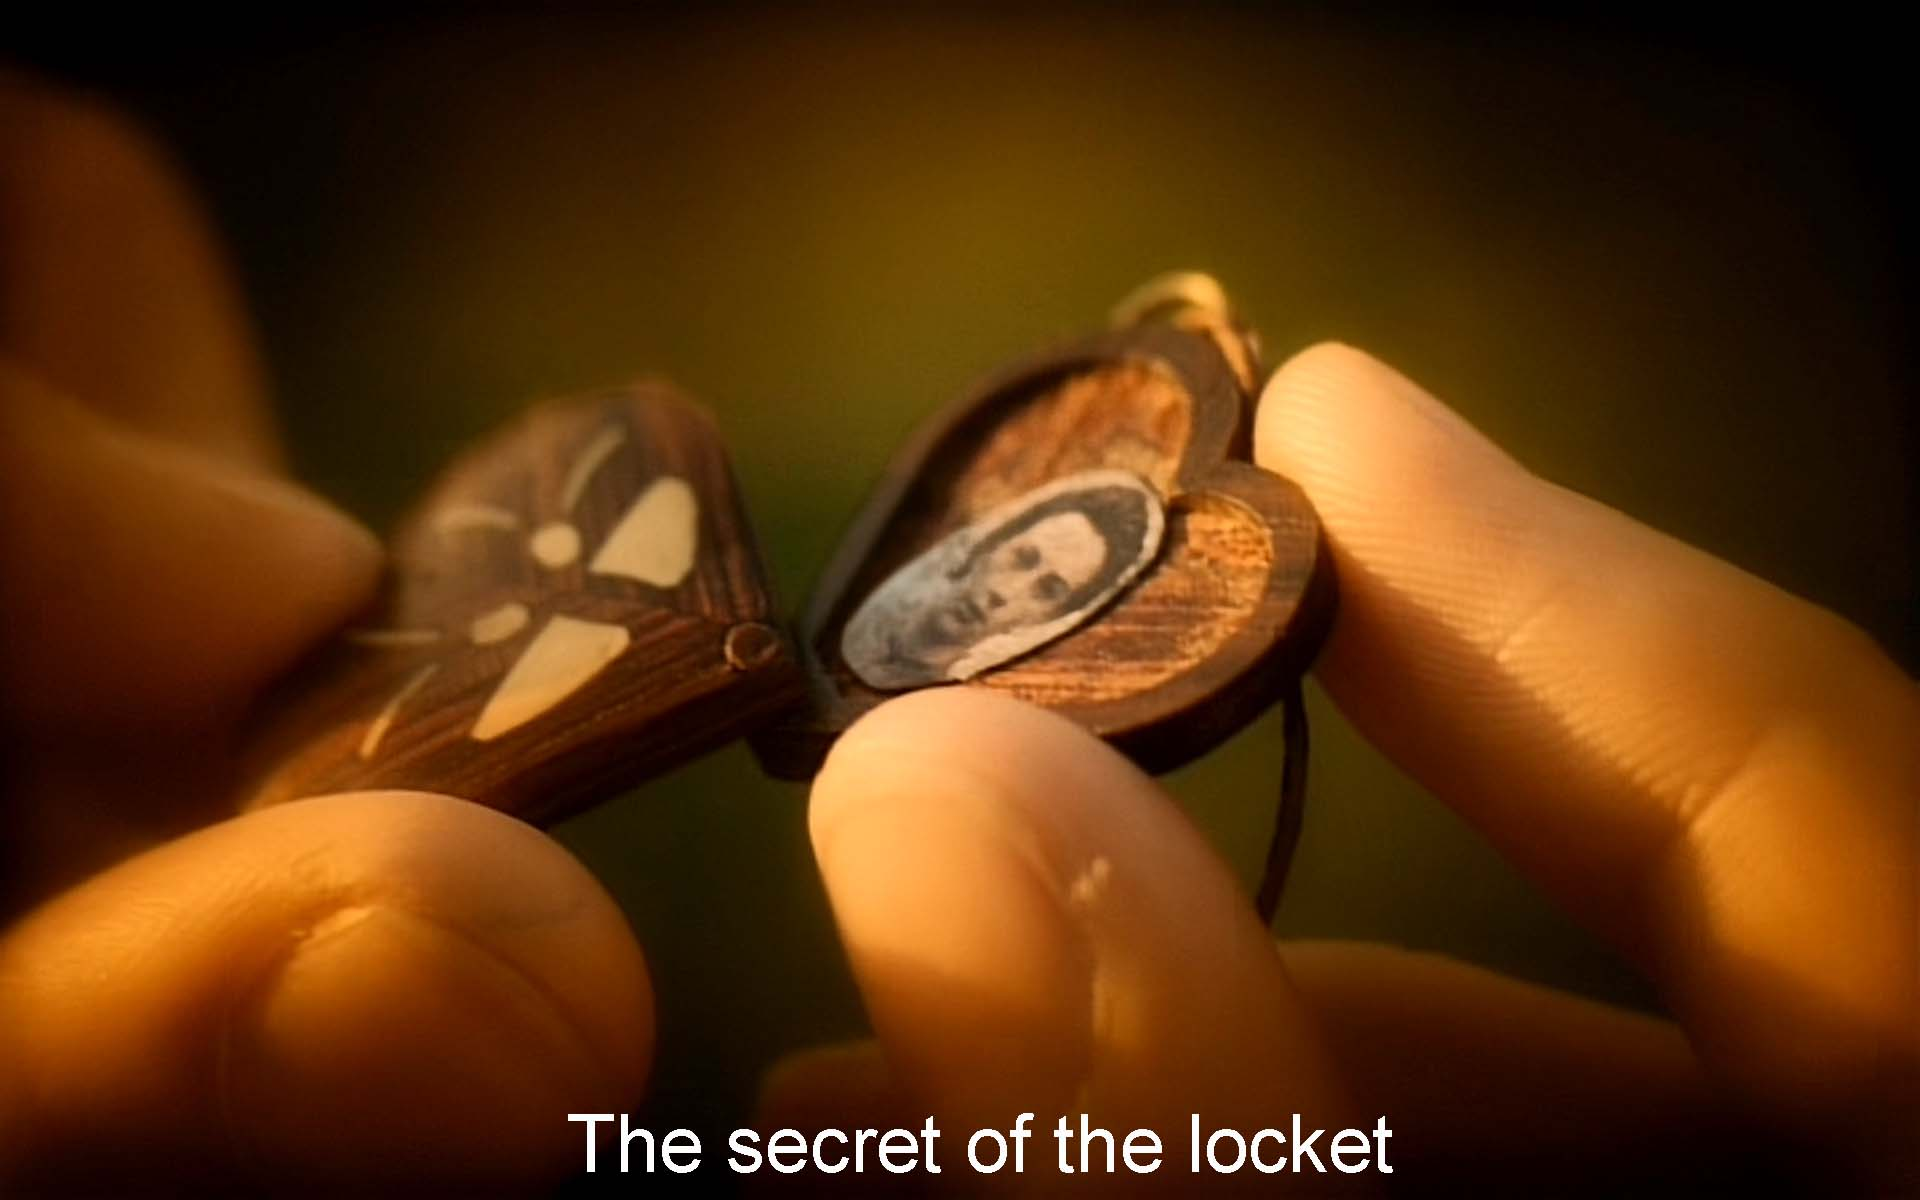 The secret of the locket